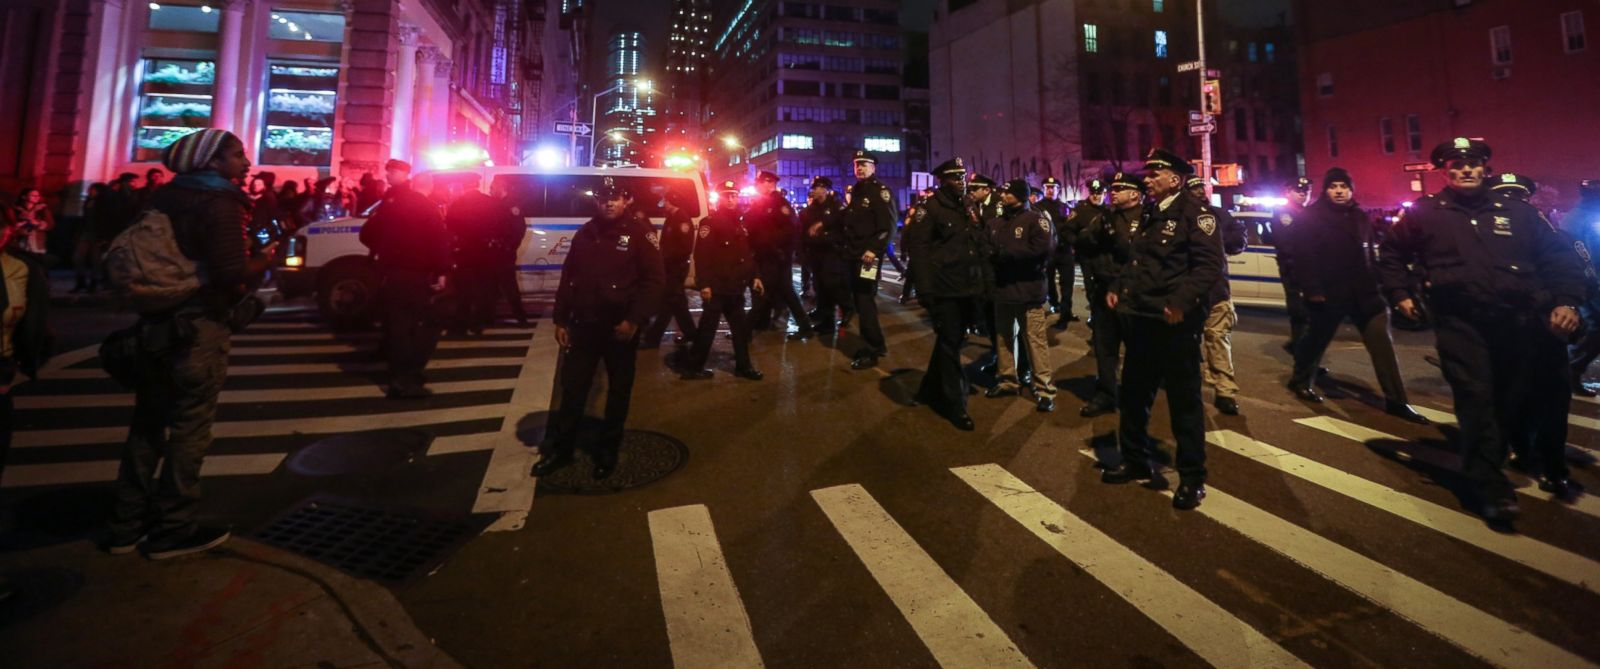 PHOTO: Police guard as hundreds of protesters gather at Foley Square in New York, Dec. 04, 2014.